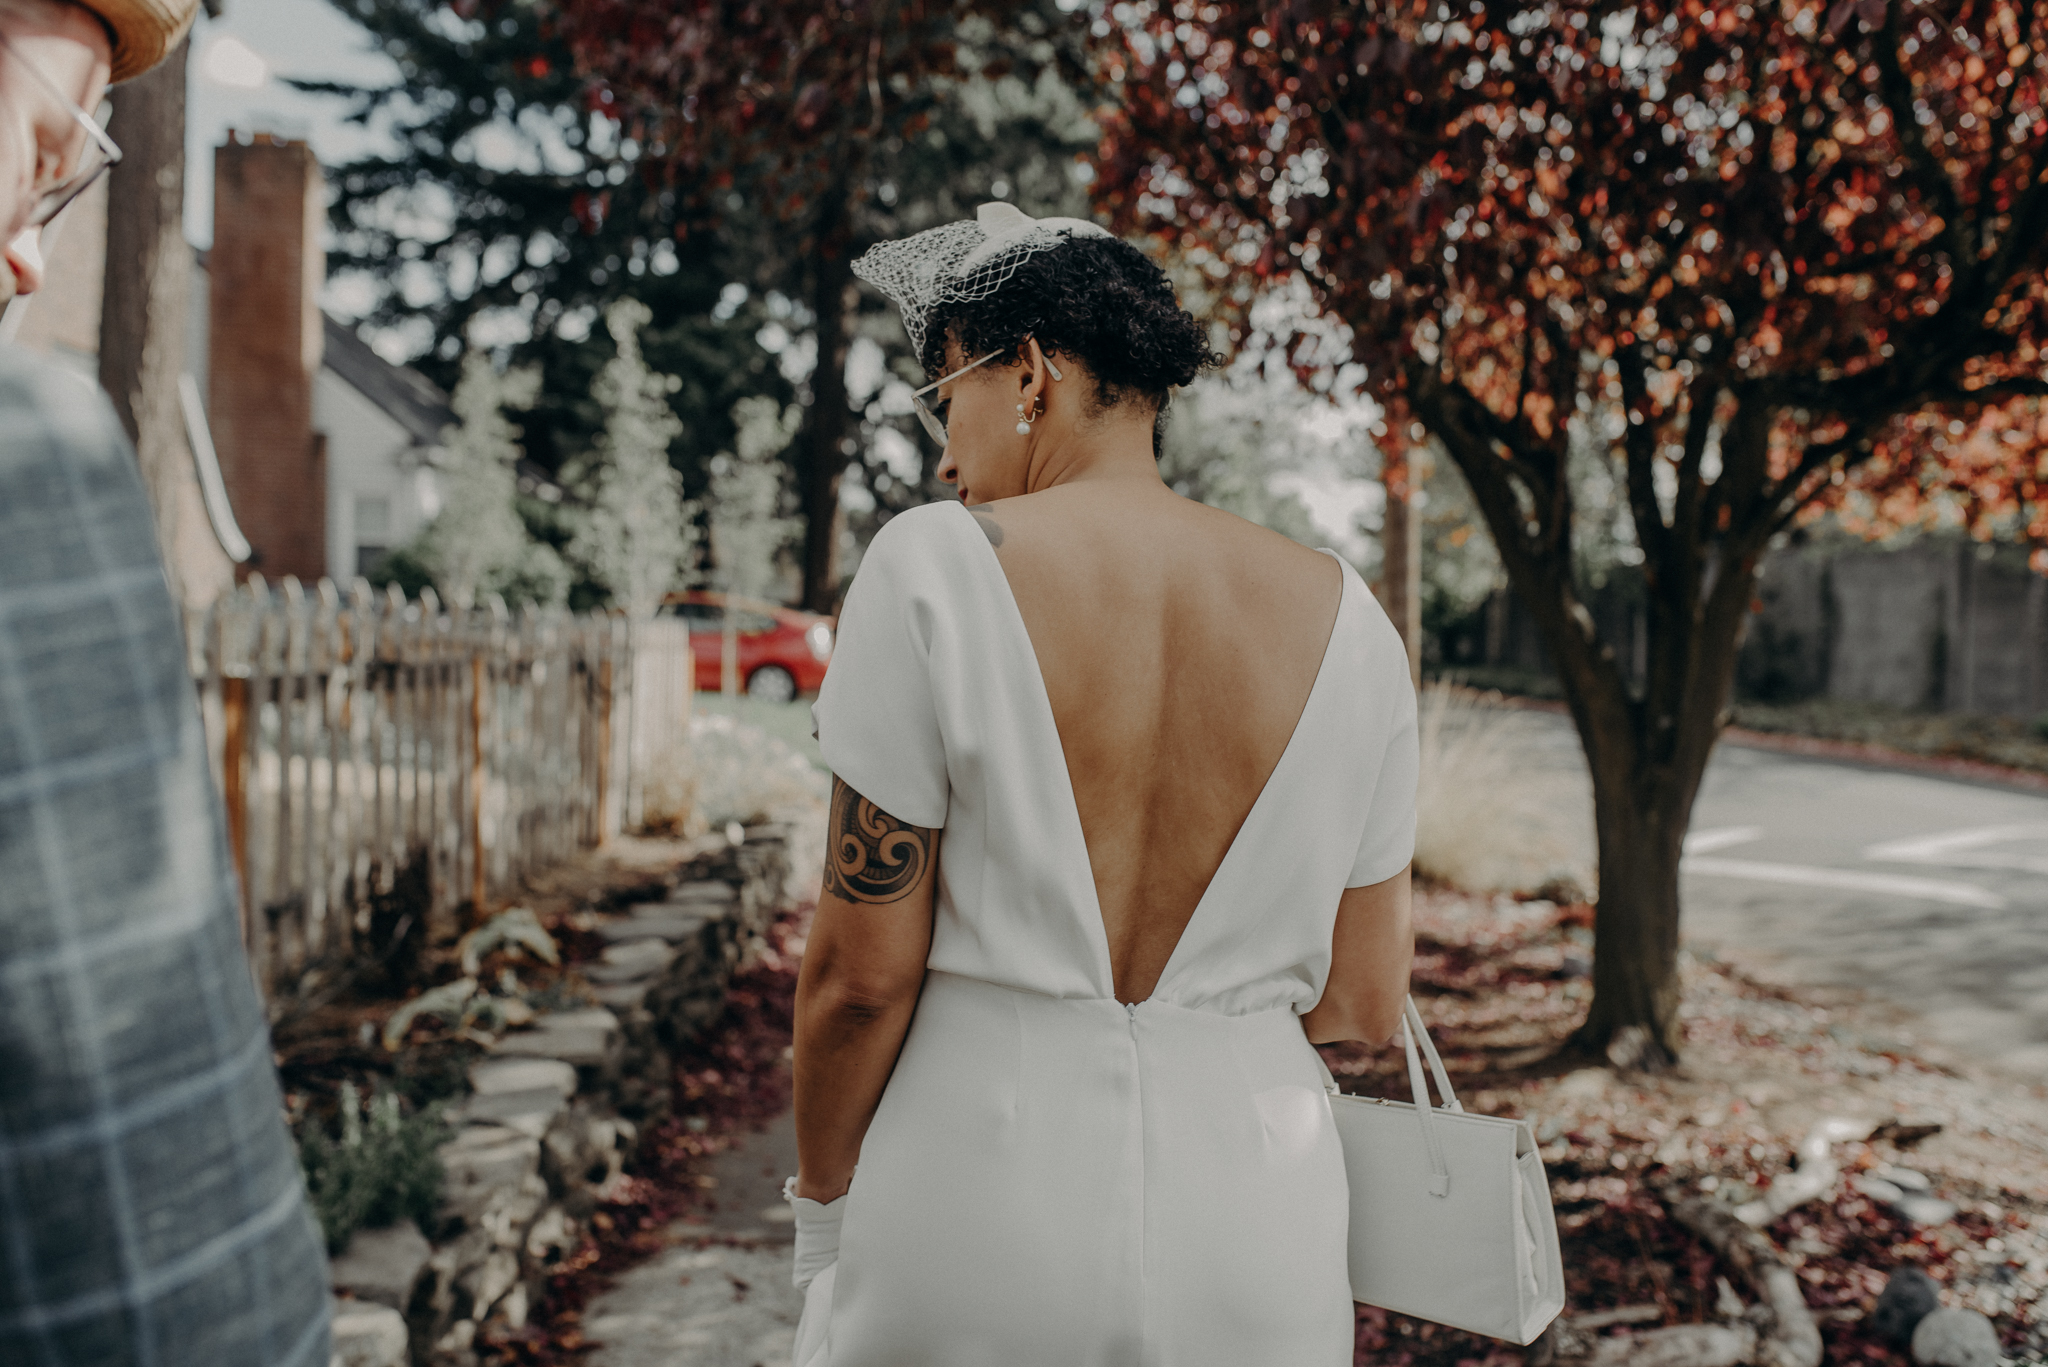 Los Angeles Wedding Photographer - Portland Elopement Photographer - IsaiahAndTaylor.com-062.jpg